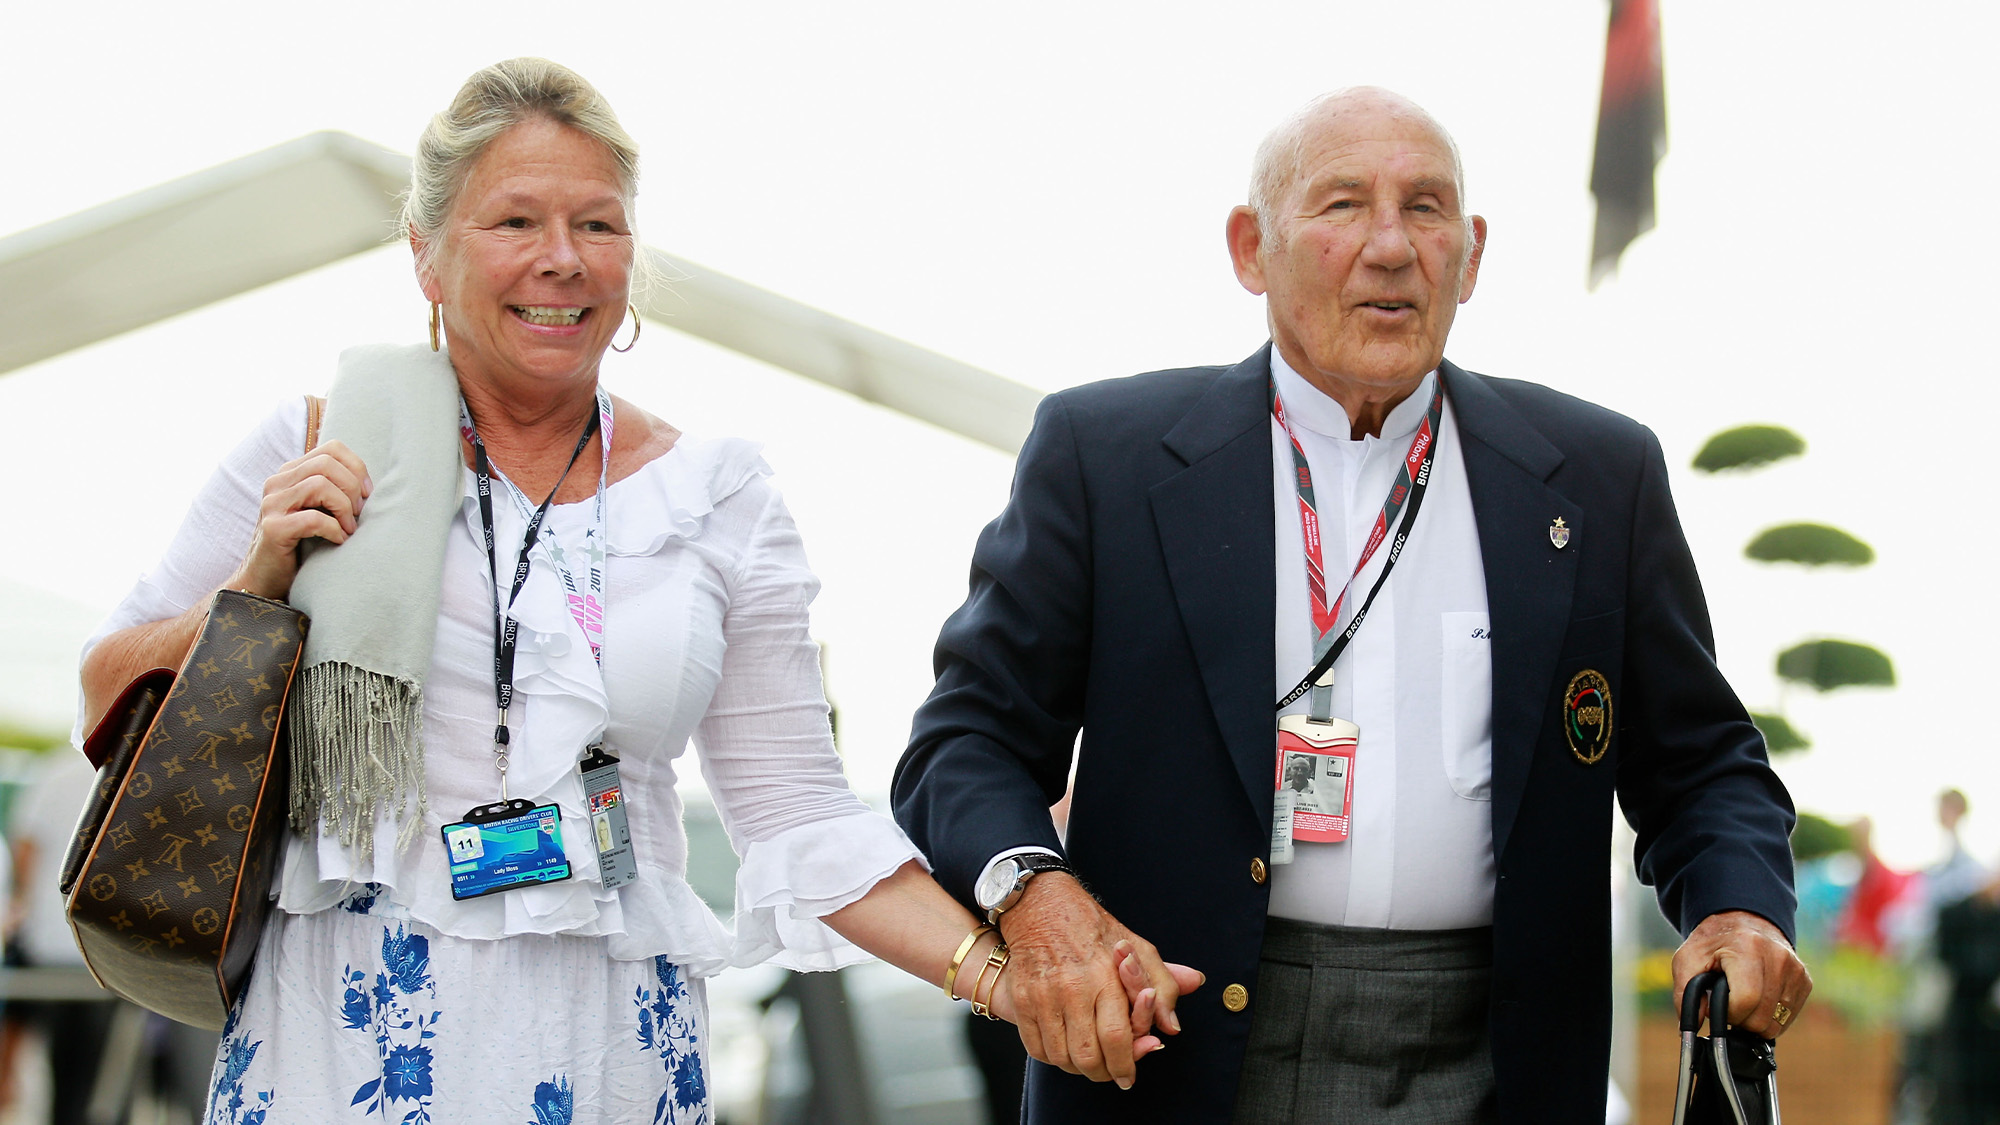 Susie and Stirling Moss